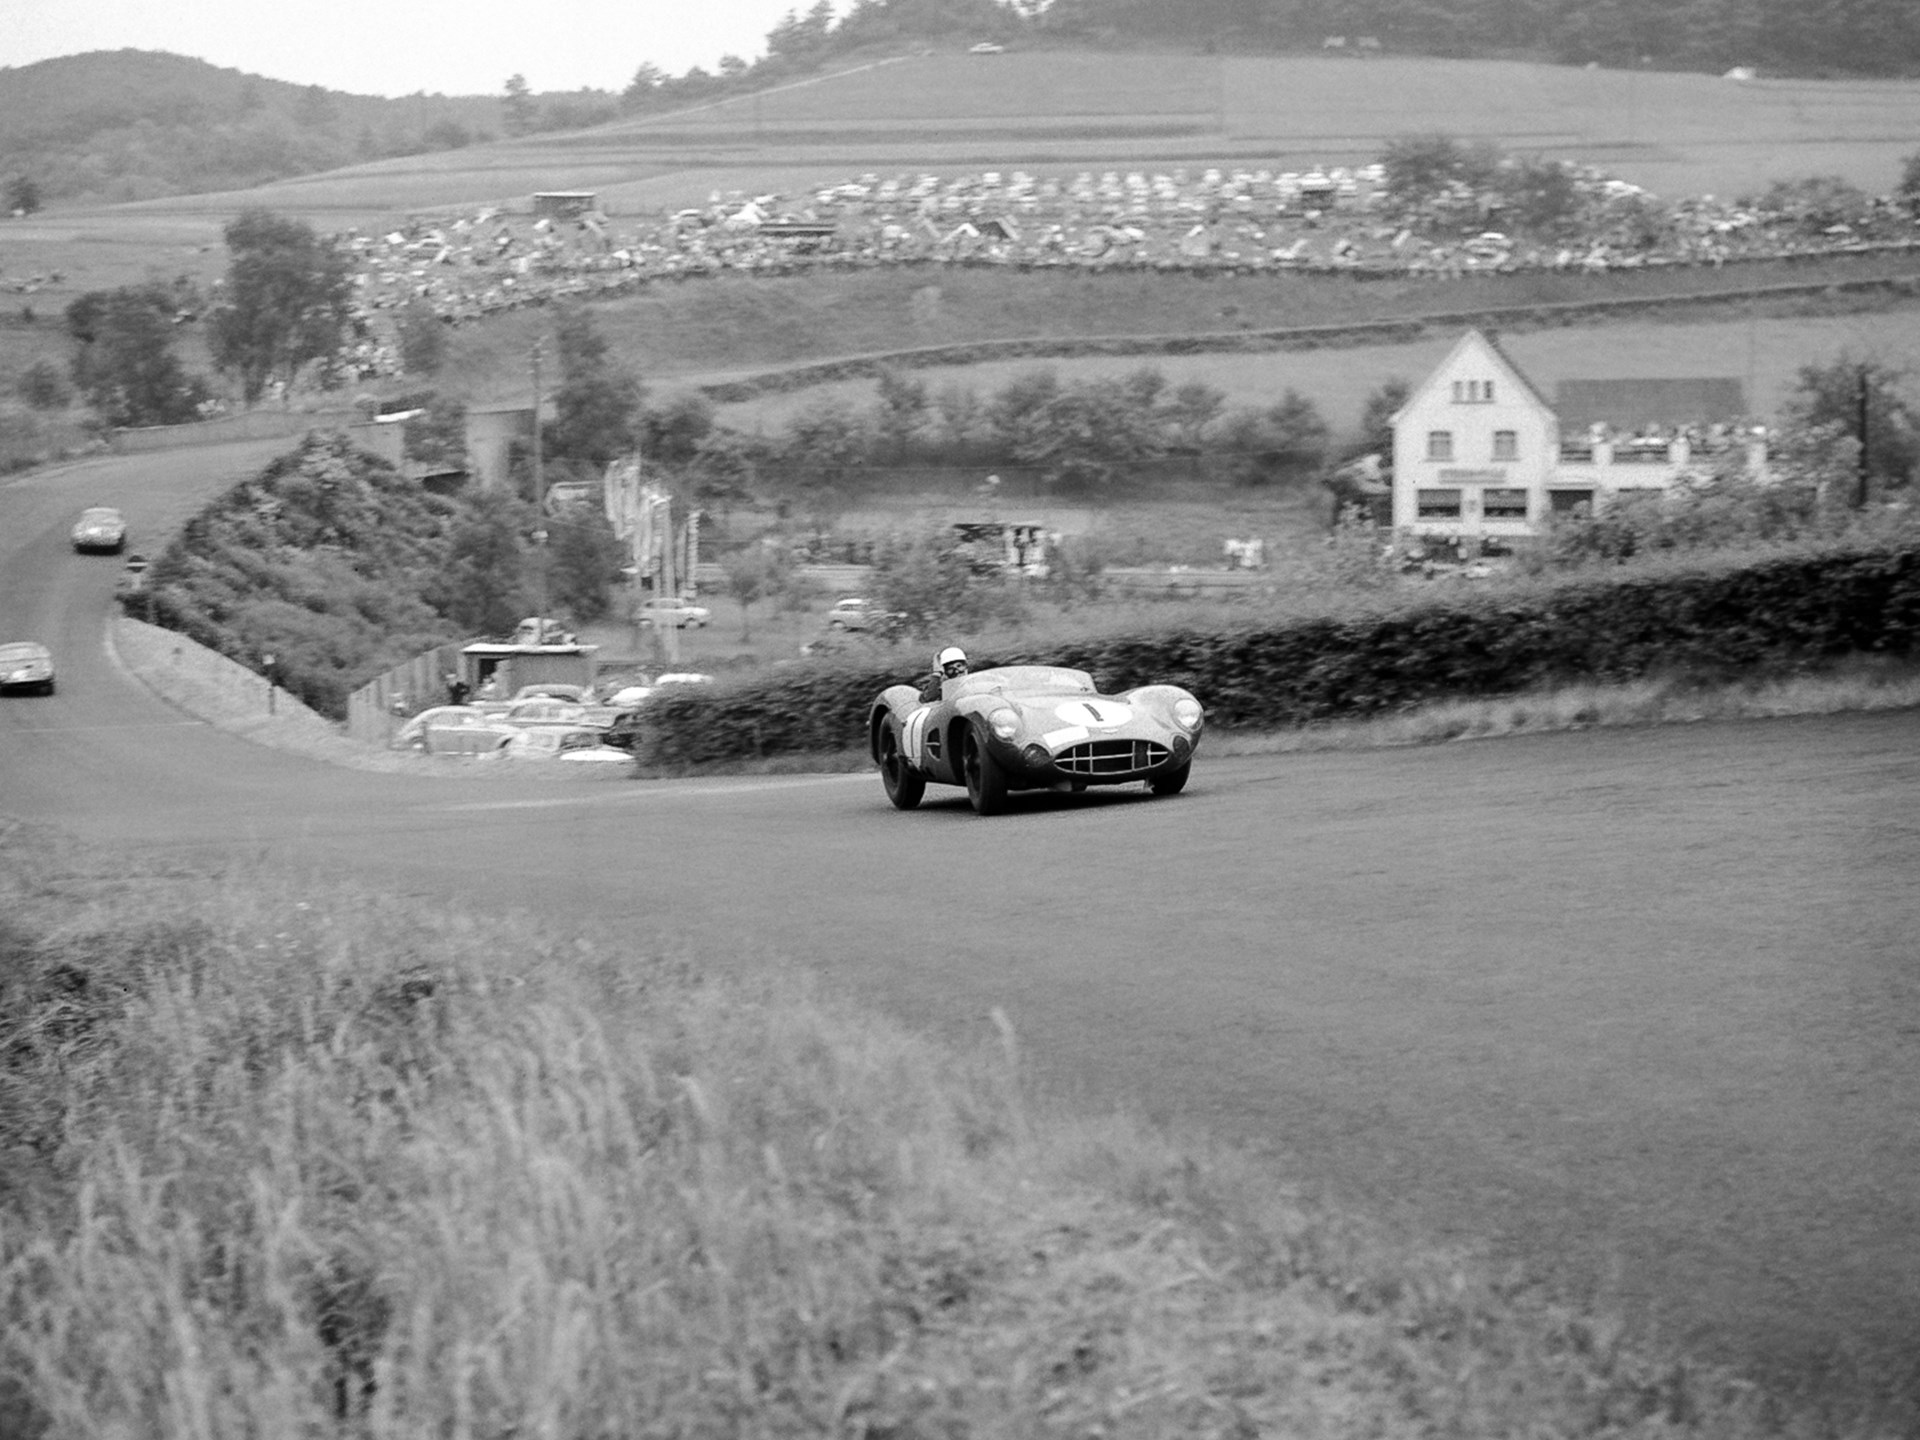 DBR1/1 at the 1959 1000km of the Nürburgring where it finished first overall.